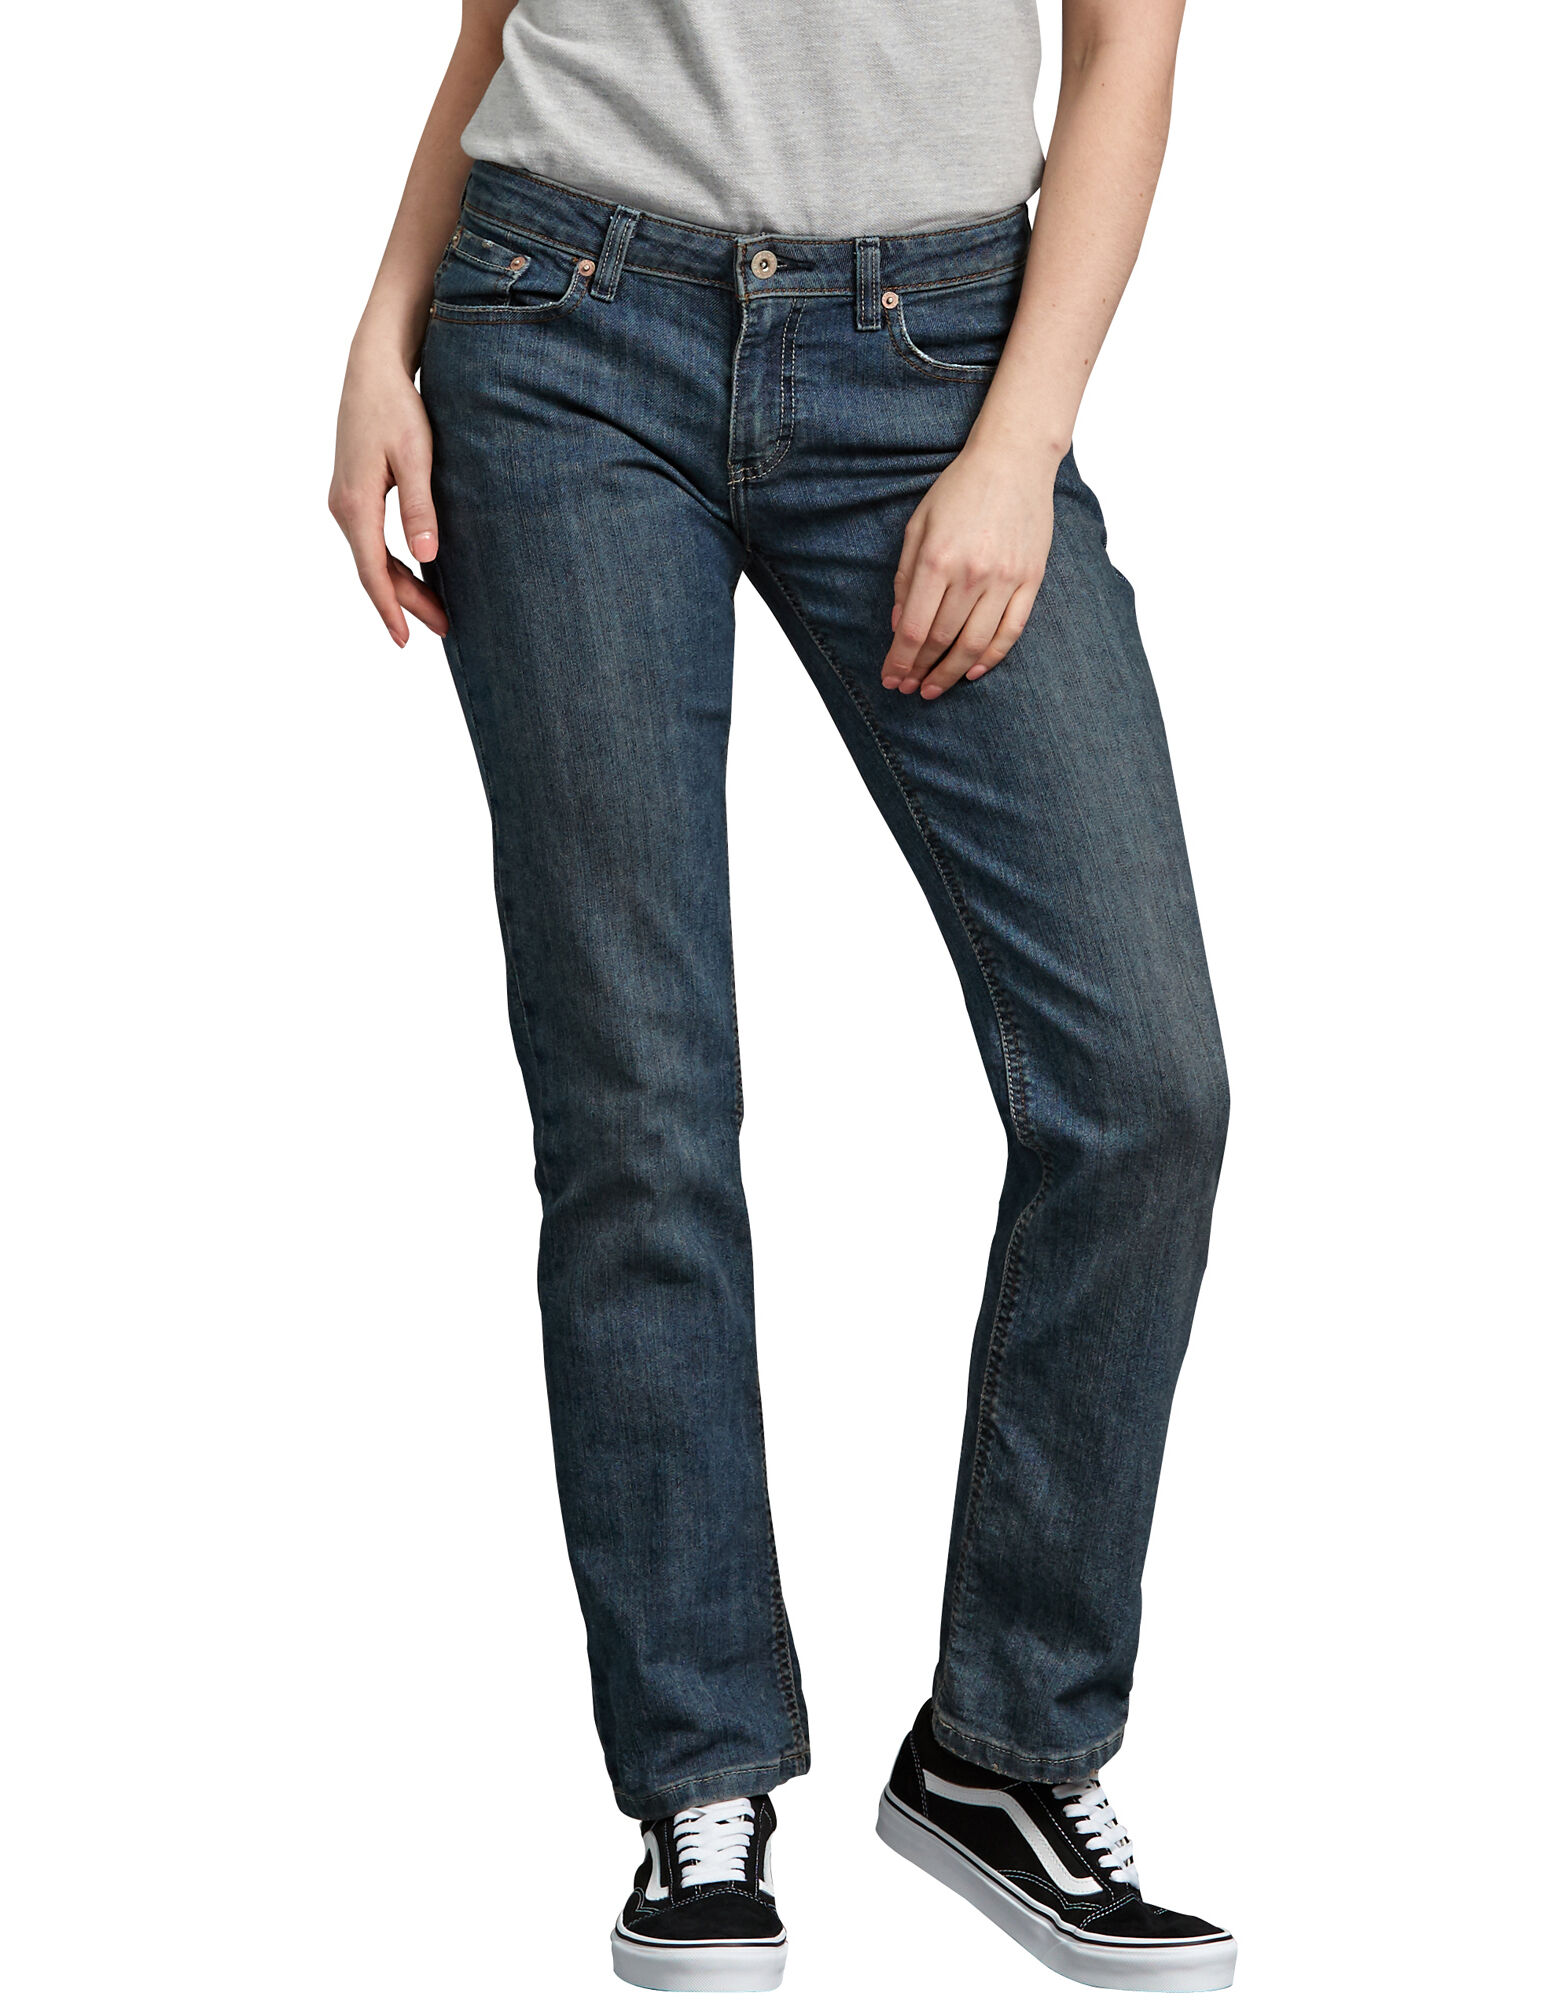 Quality Jeans For Women